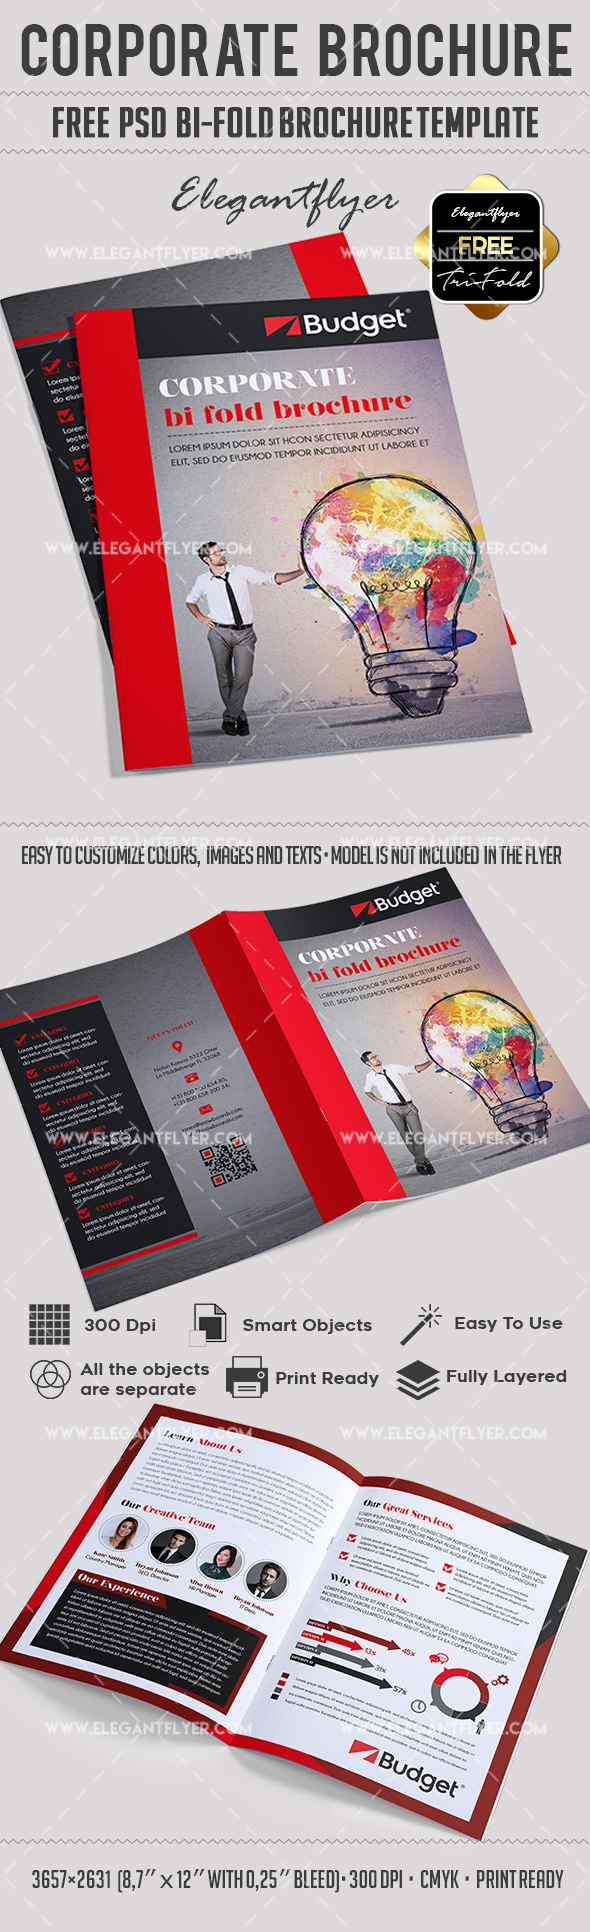 Corporate free psd bi fold psd brochure template by for Free flyer brochure templates